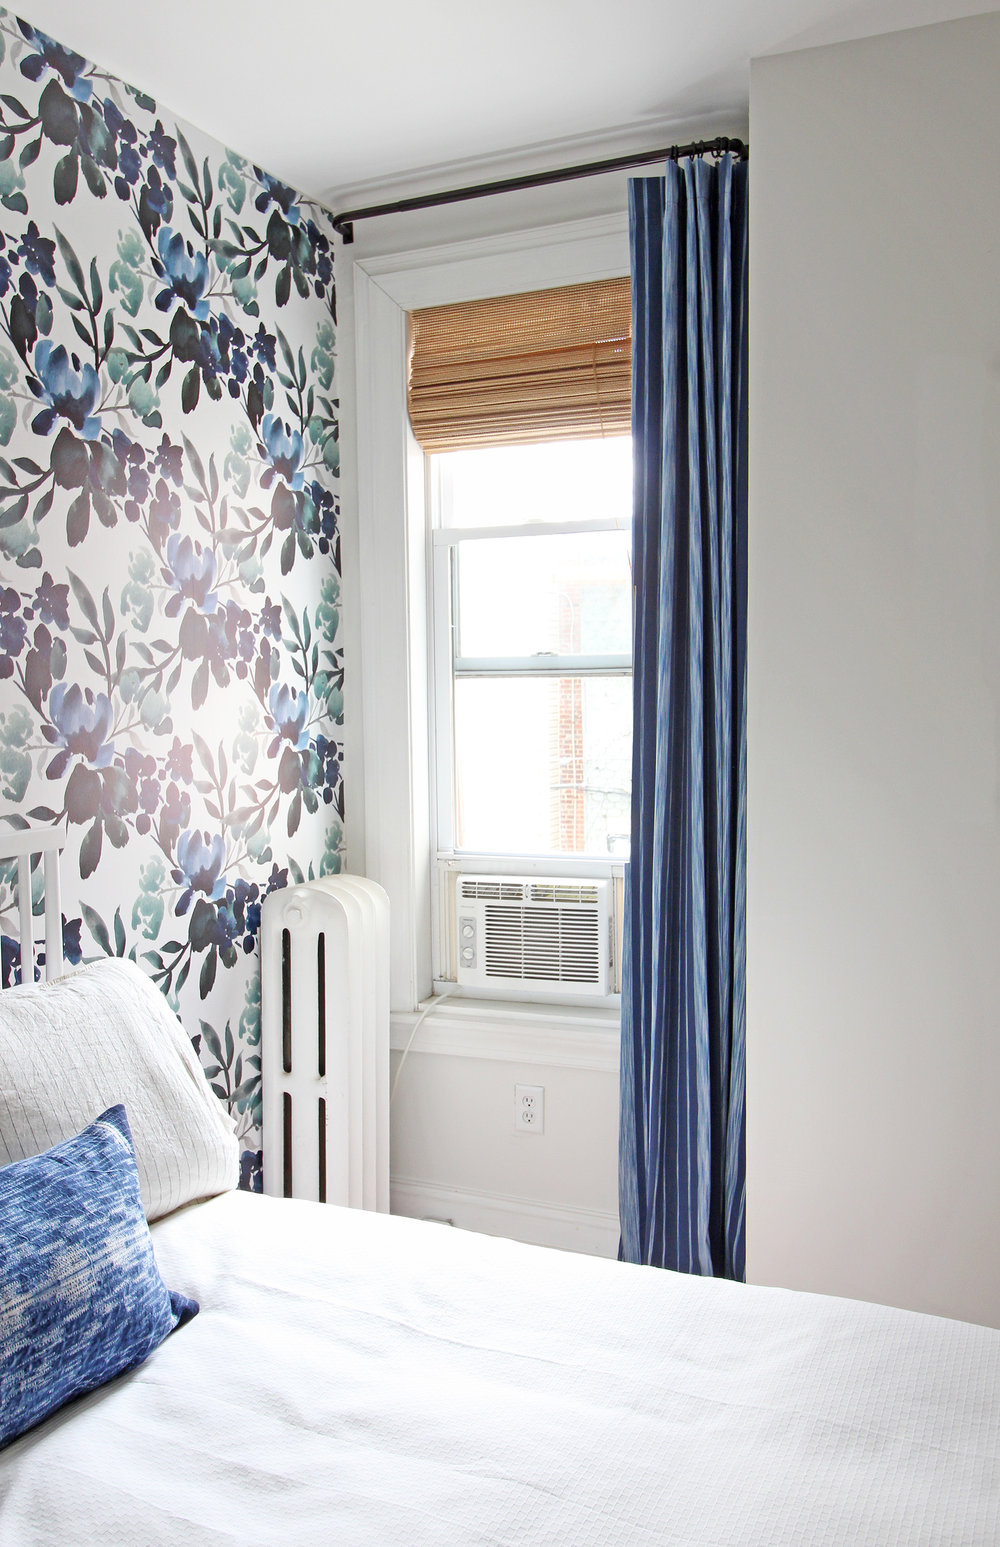 Here's a peek of the progress on this One Room Challenge Guest room! A new blue striped curtain went up this week (custom made) along with a woven roman shade. These complement the bold blue and green floral wallpaper beautifully.